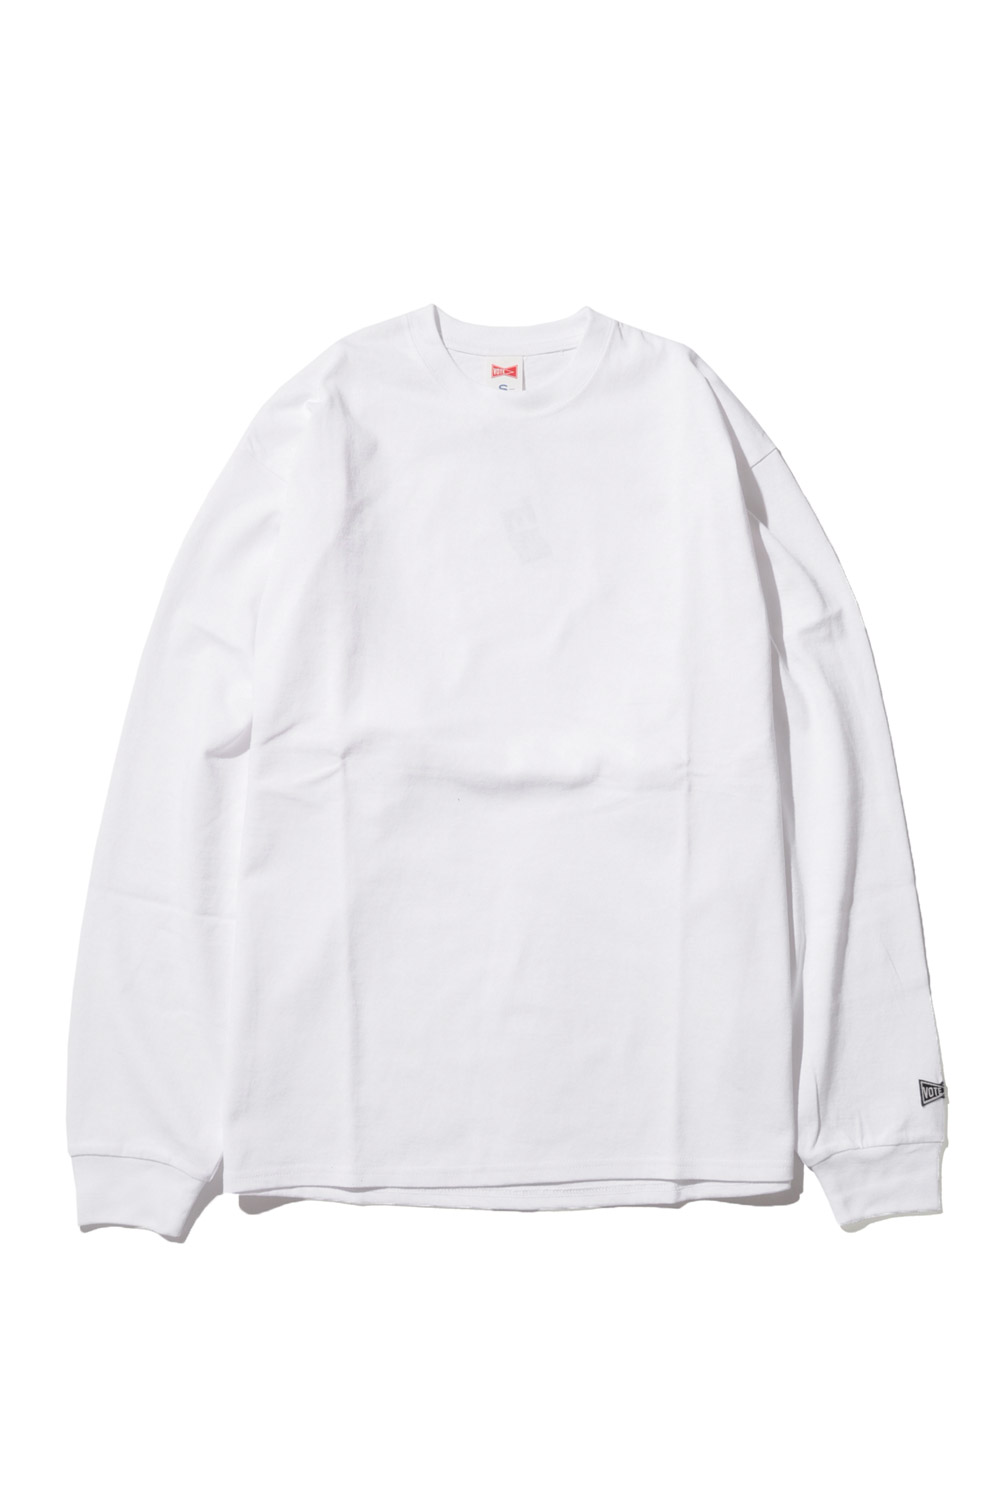 画像1: 【VOTE MAKE NEW CLOTHES】FAT L/S TEE